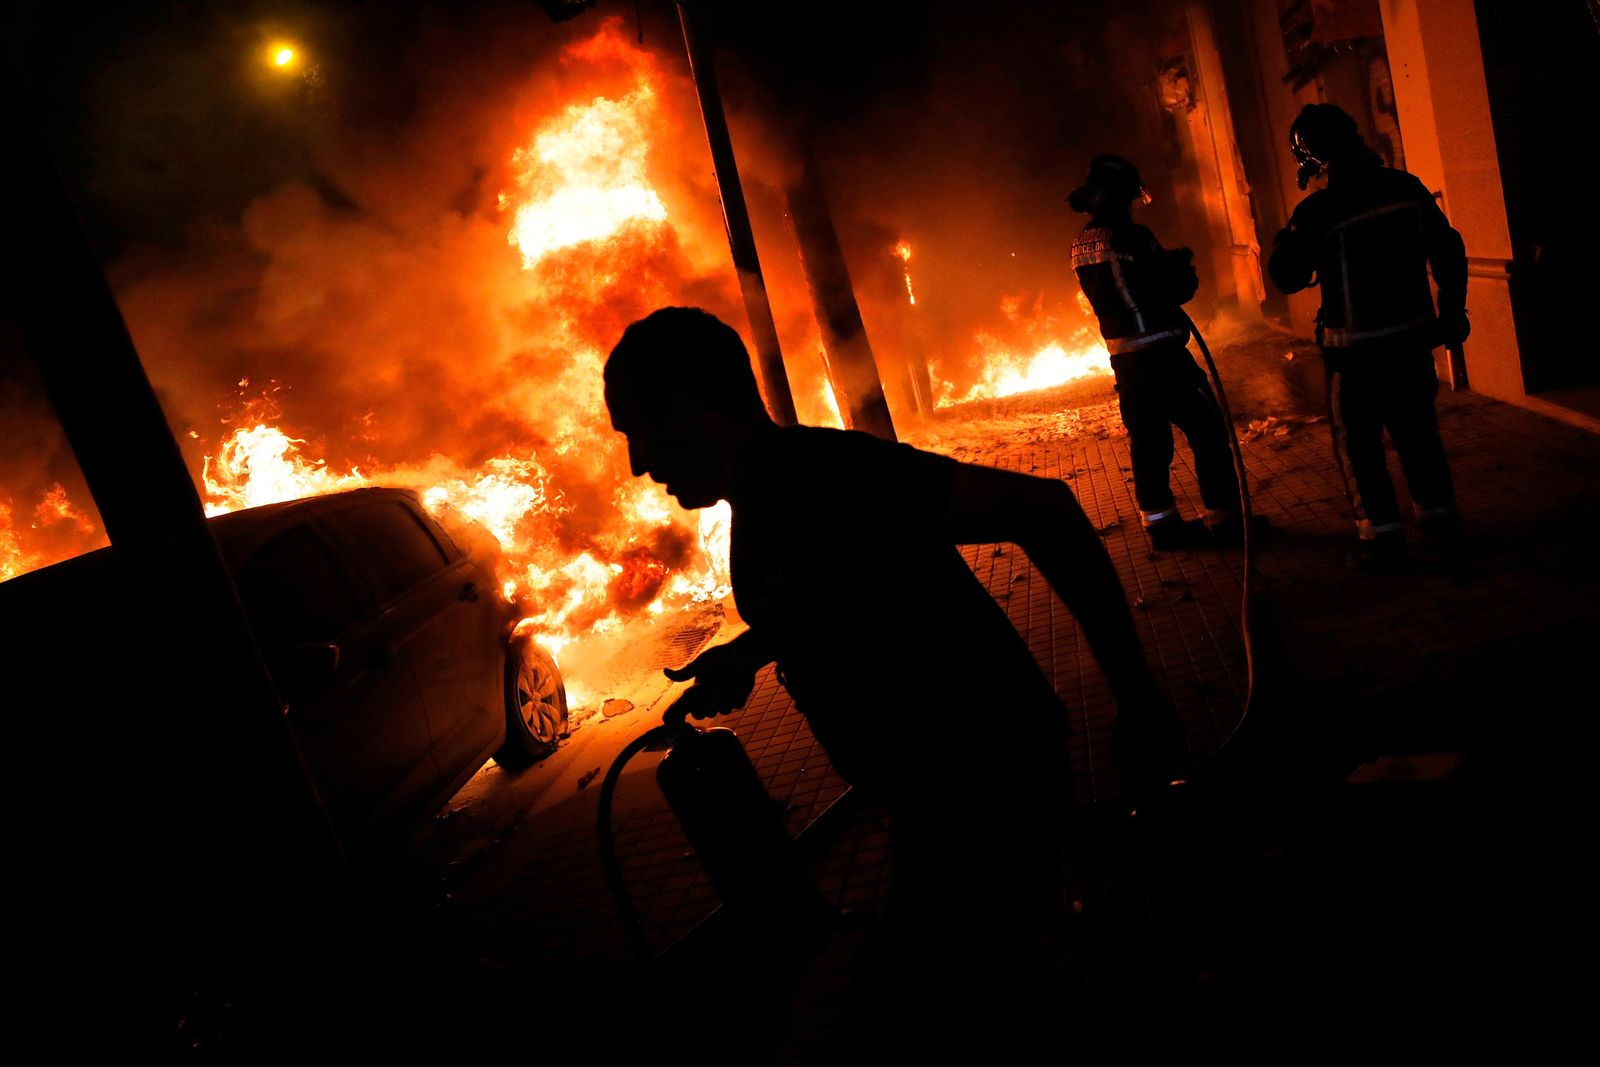 Firefighters and residents try to put out fires burning cars during clashes between protestors and police in Barcelona, Spain, Wednesday, Oct. 16, 2019.{ } (AP Photo/Bernat Armangue)